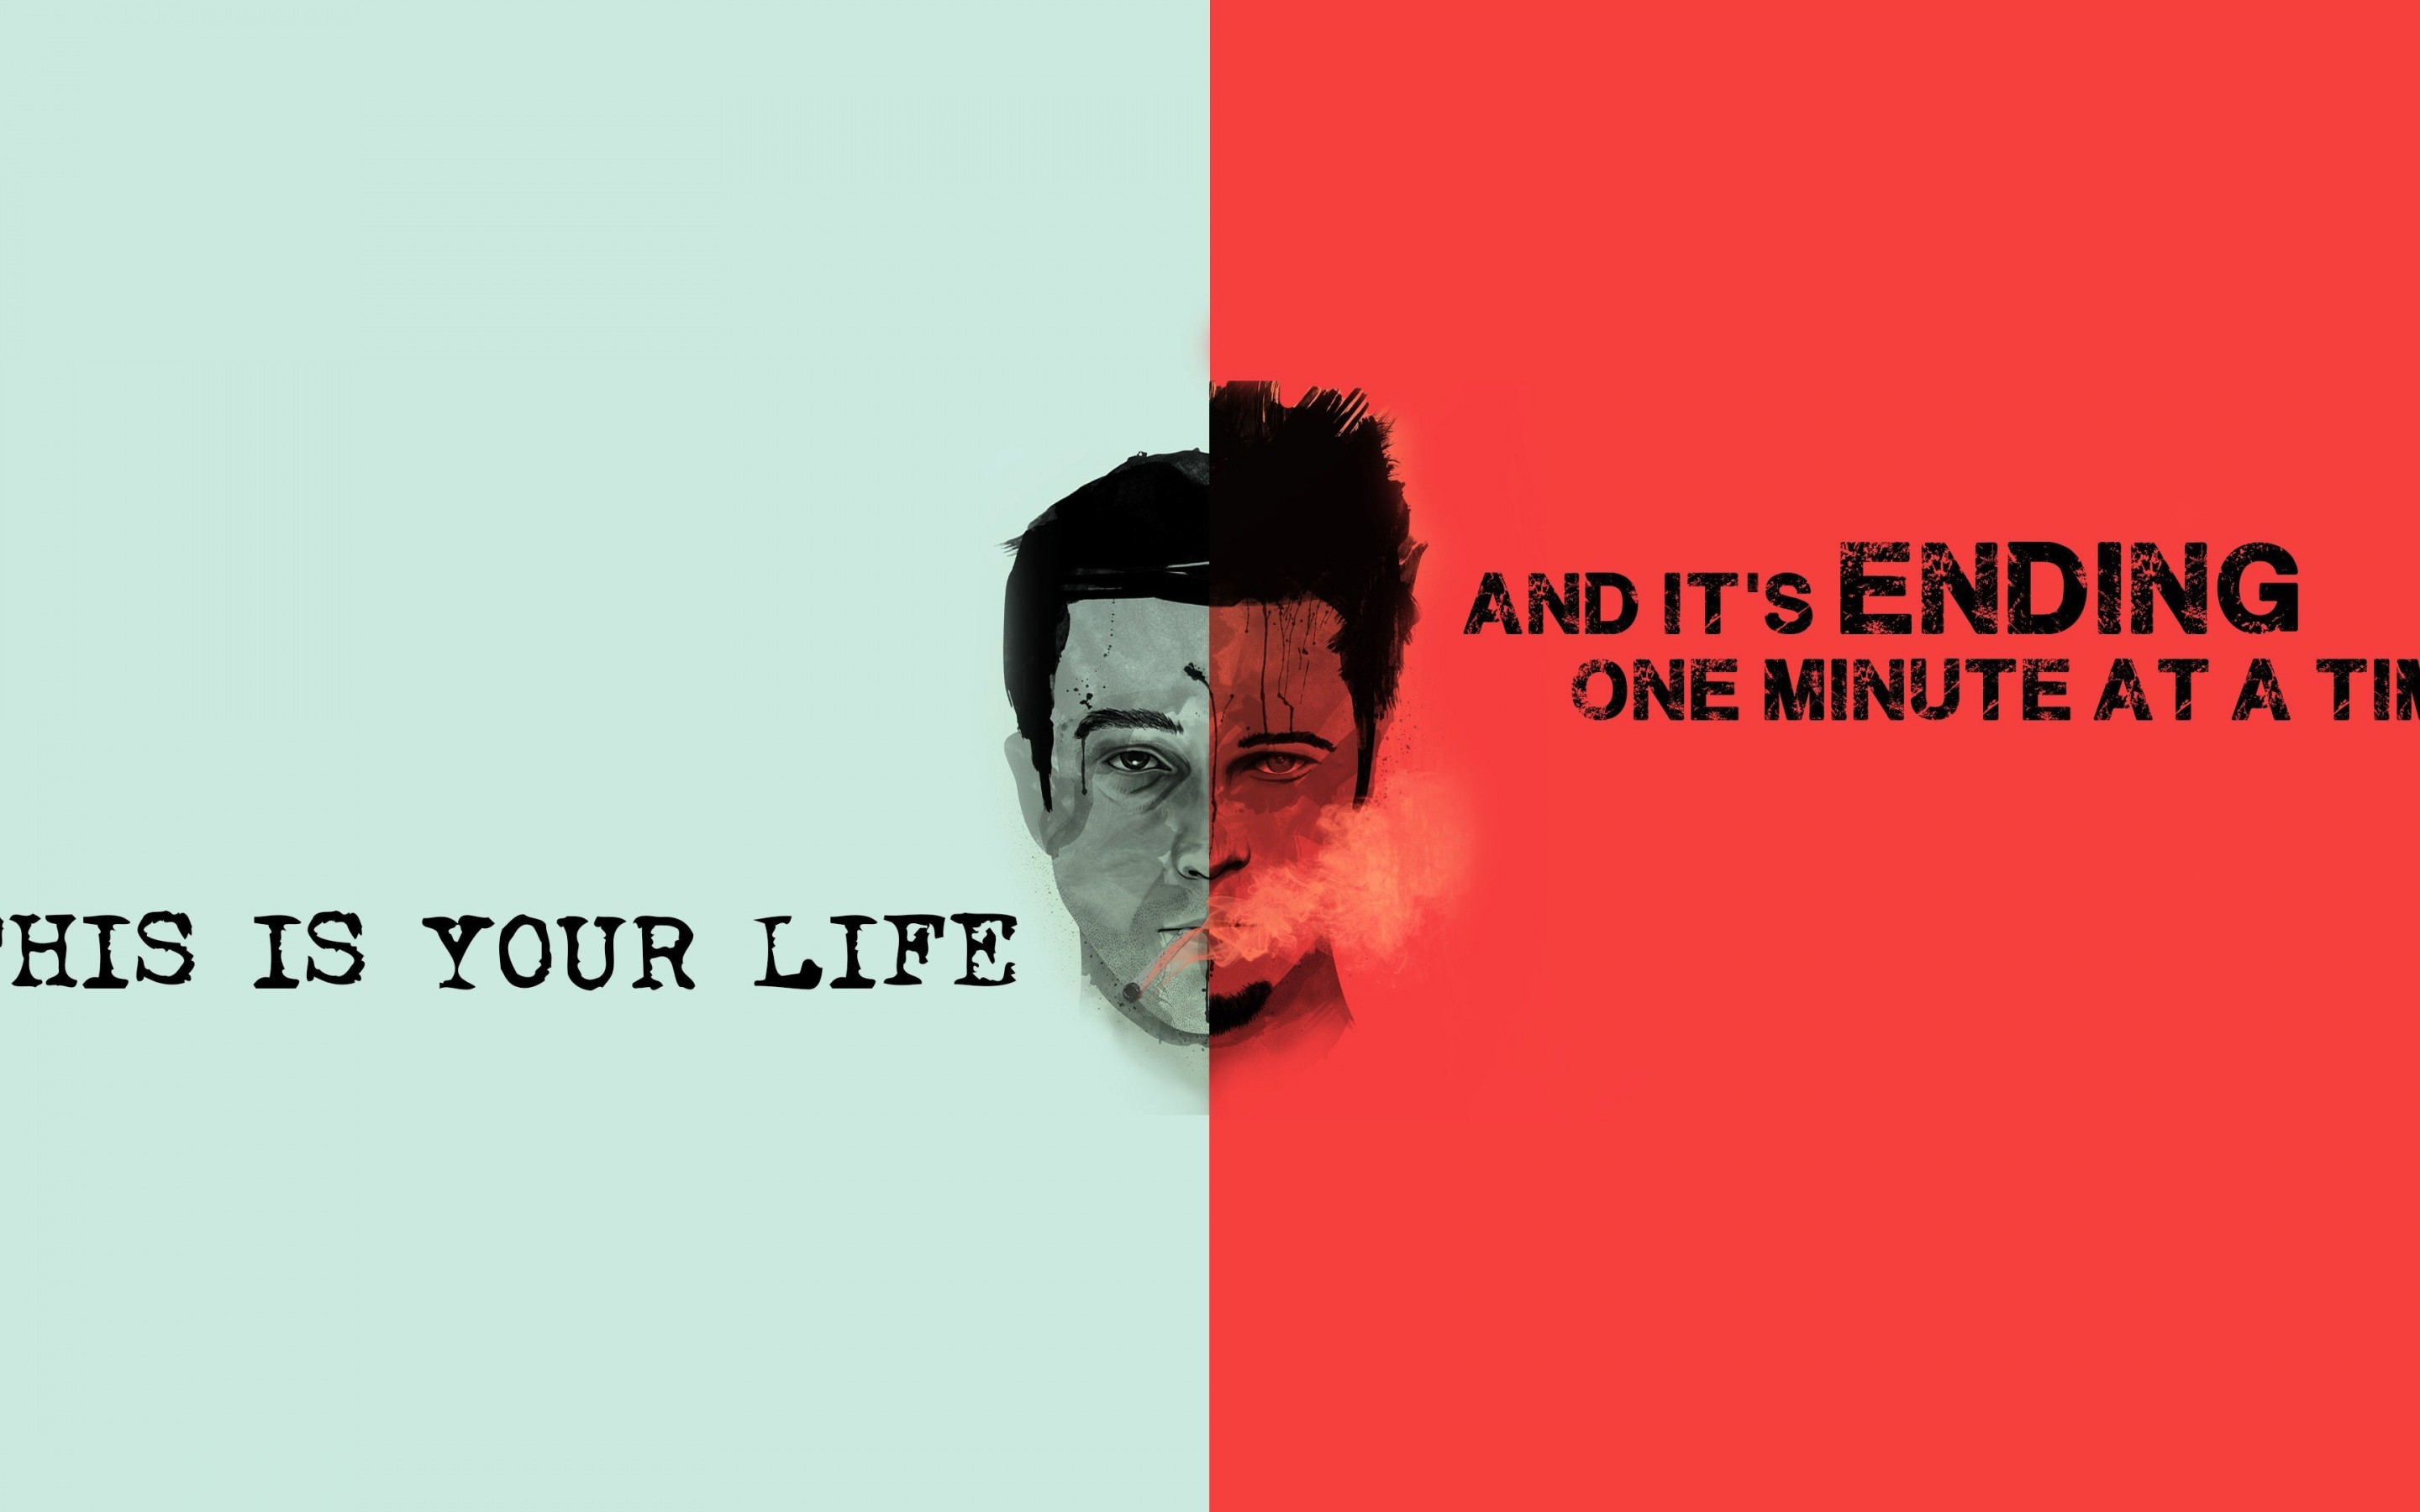 Fight Club Quote Wallpaper for Desktop 2880x1800